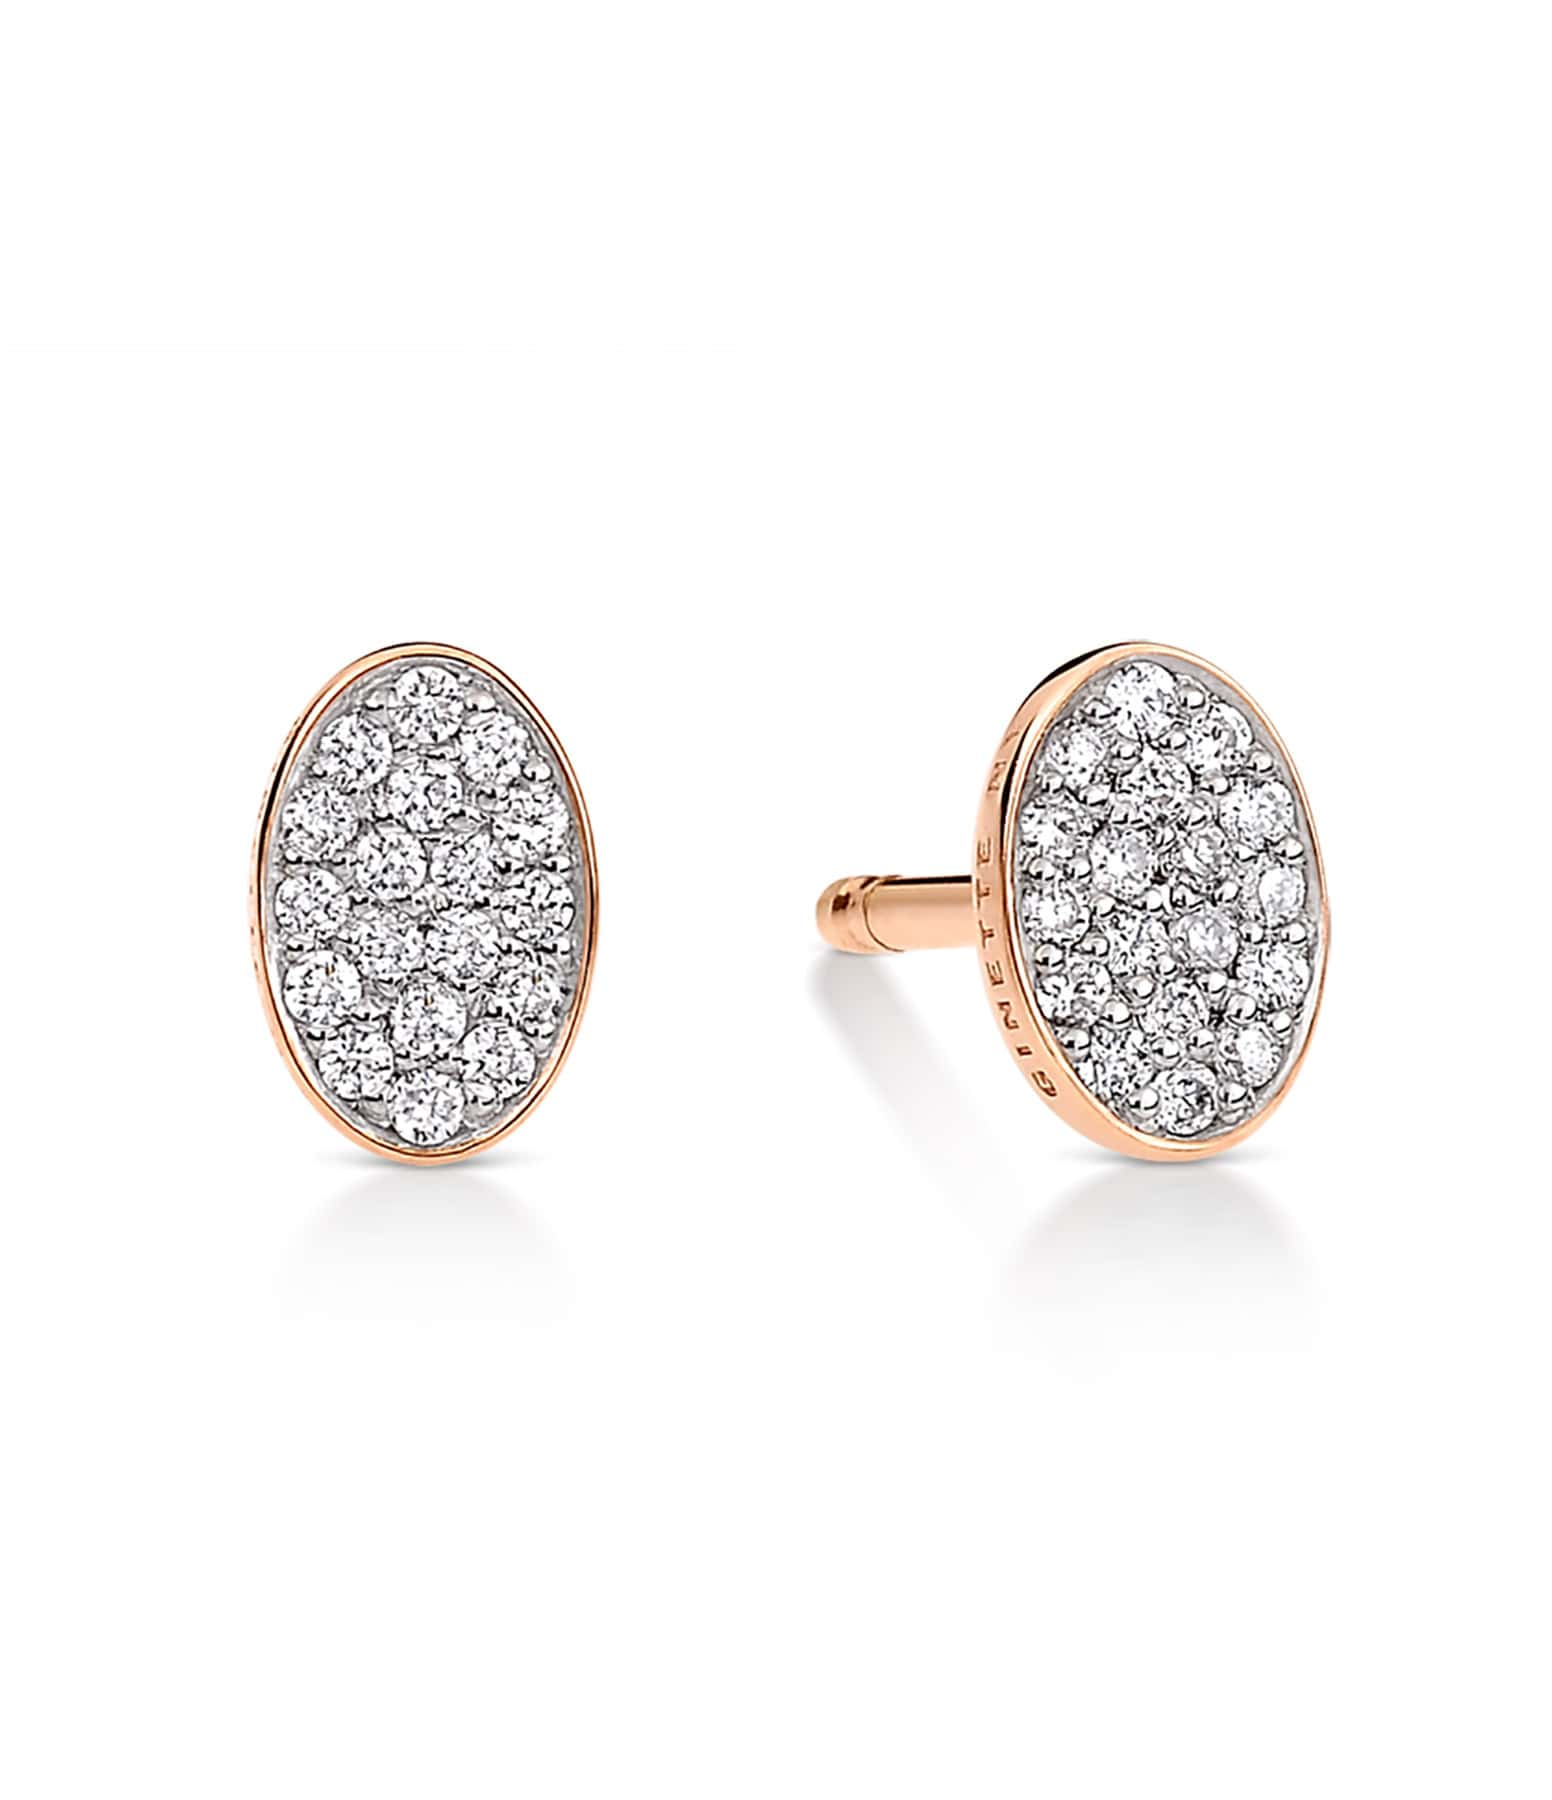 GINETTE_NY - Boucles d'oreilles Sequin Or Rose Diamants